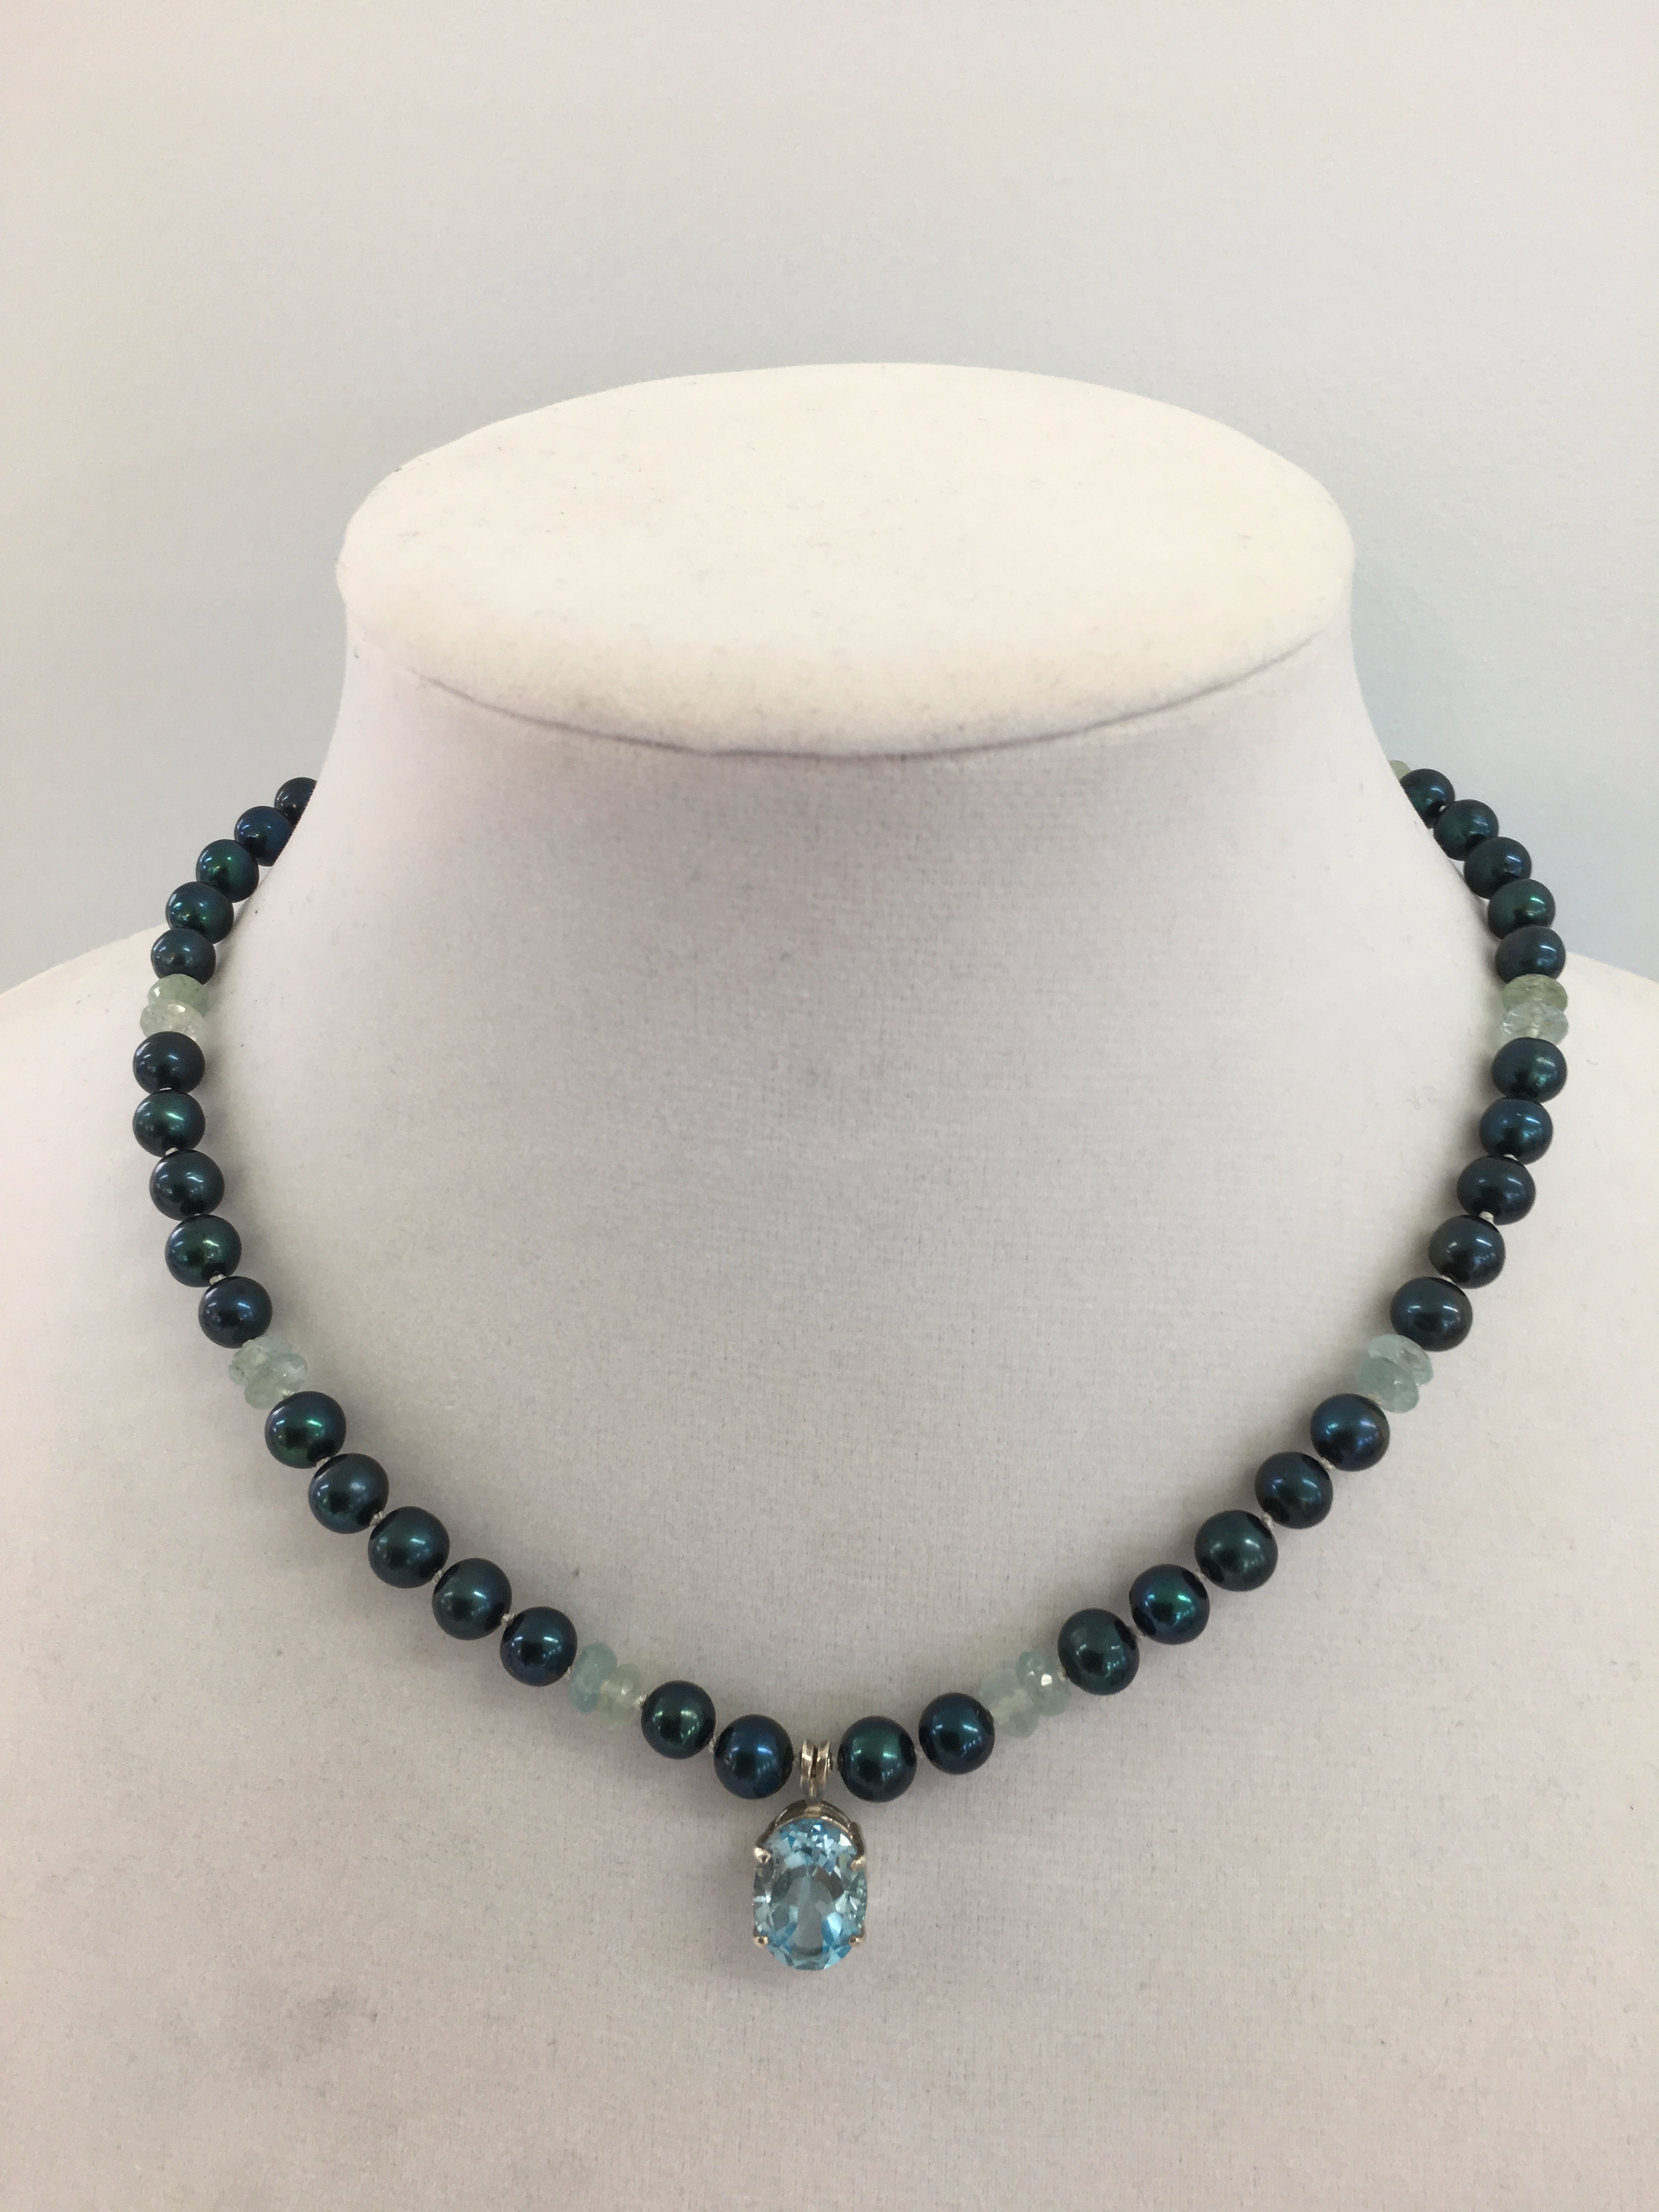 Sterling Silver Necklace w/Freshwater 6mm pearls, Aquamarine prisms & a Aquamarine Topaz Pendant